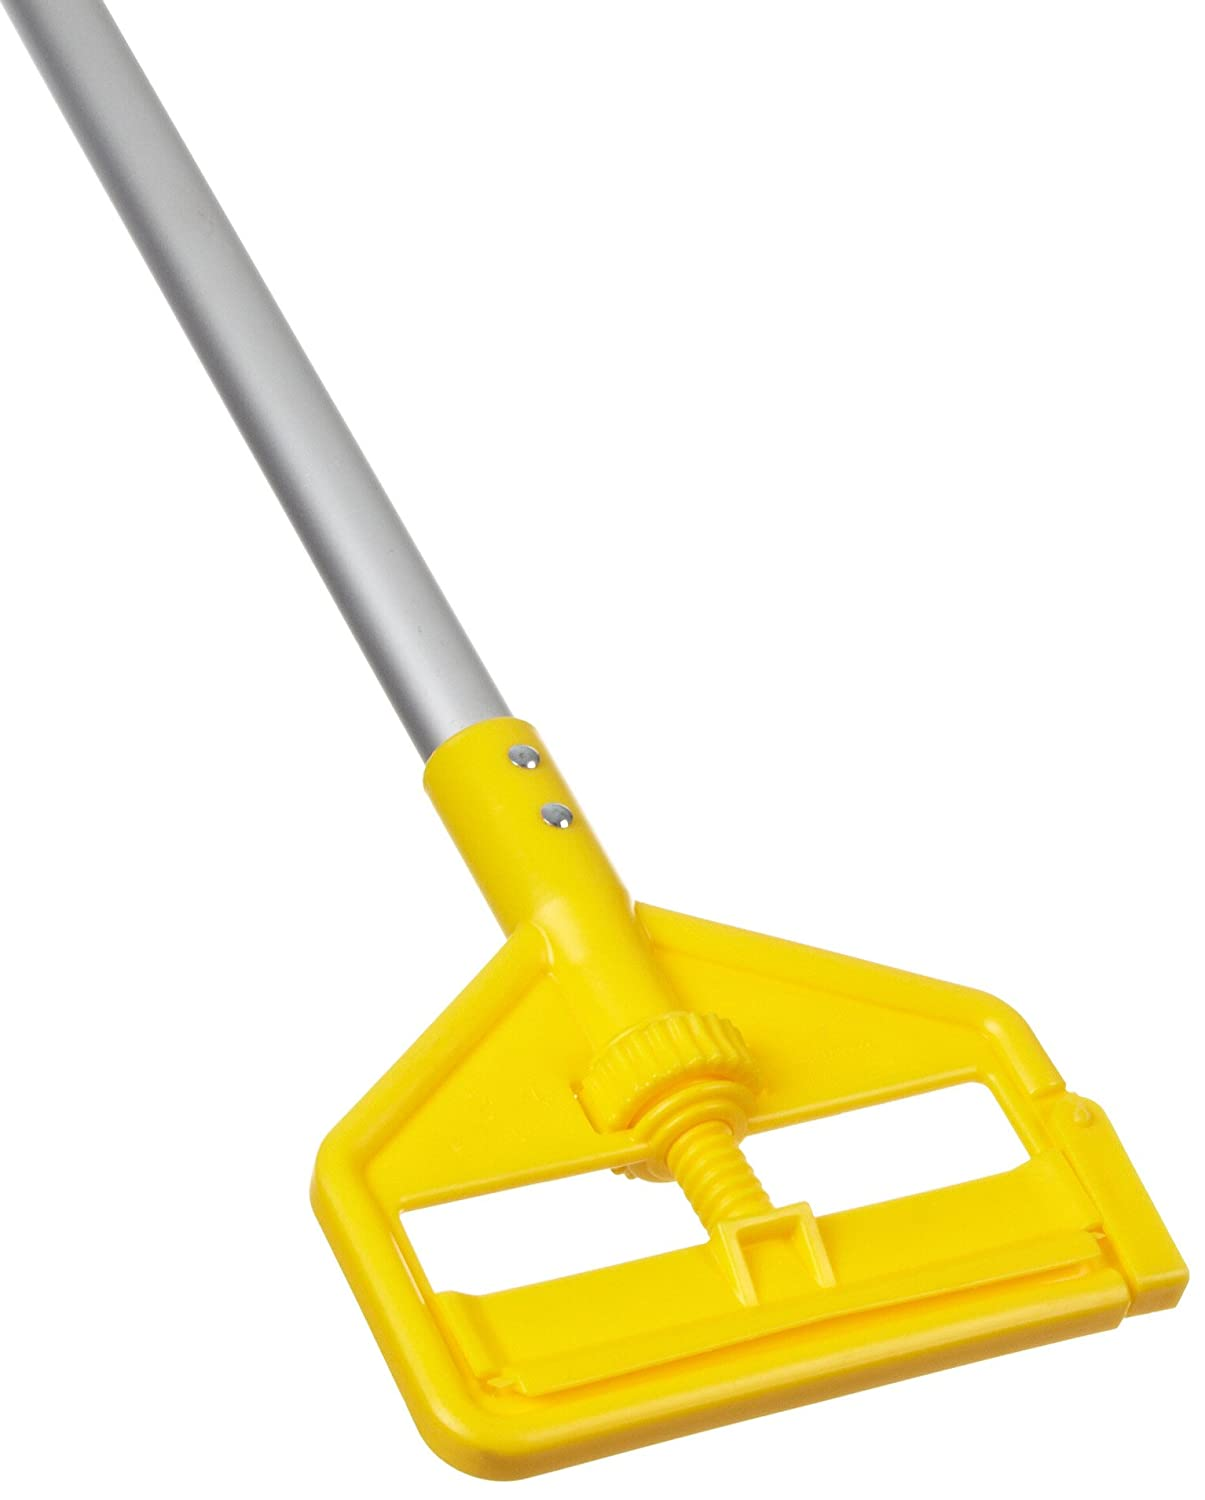 Rubbermaid Commercial Invader Side Gate Wet Mop Gray Aluminum Handle with Large Yellow Plastic Head, 54-Inch Length (FGH125000000) Rubbermaid Commercial Products